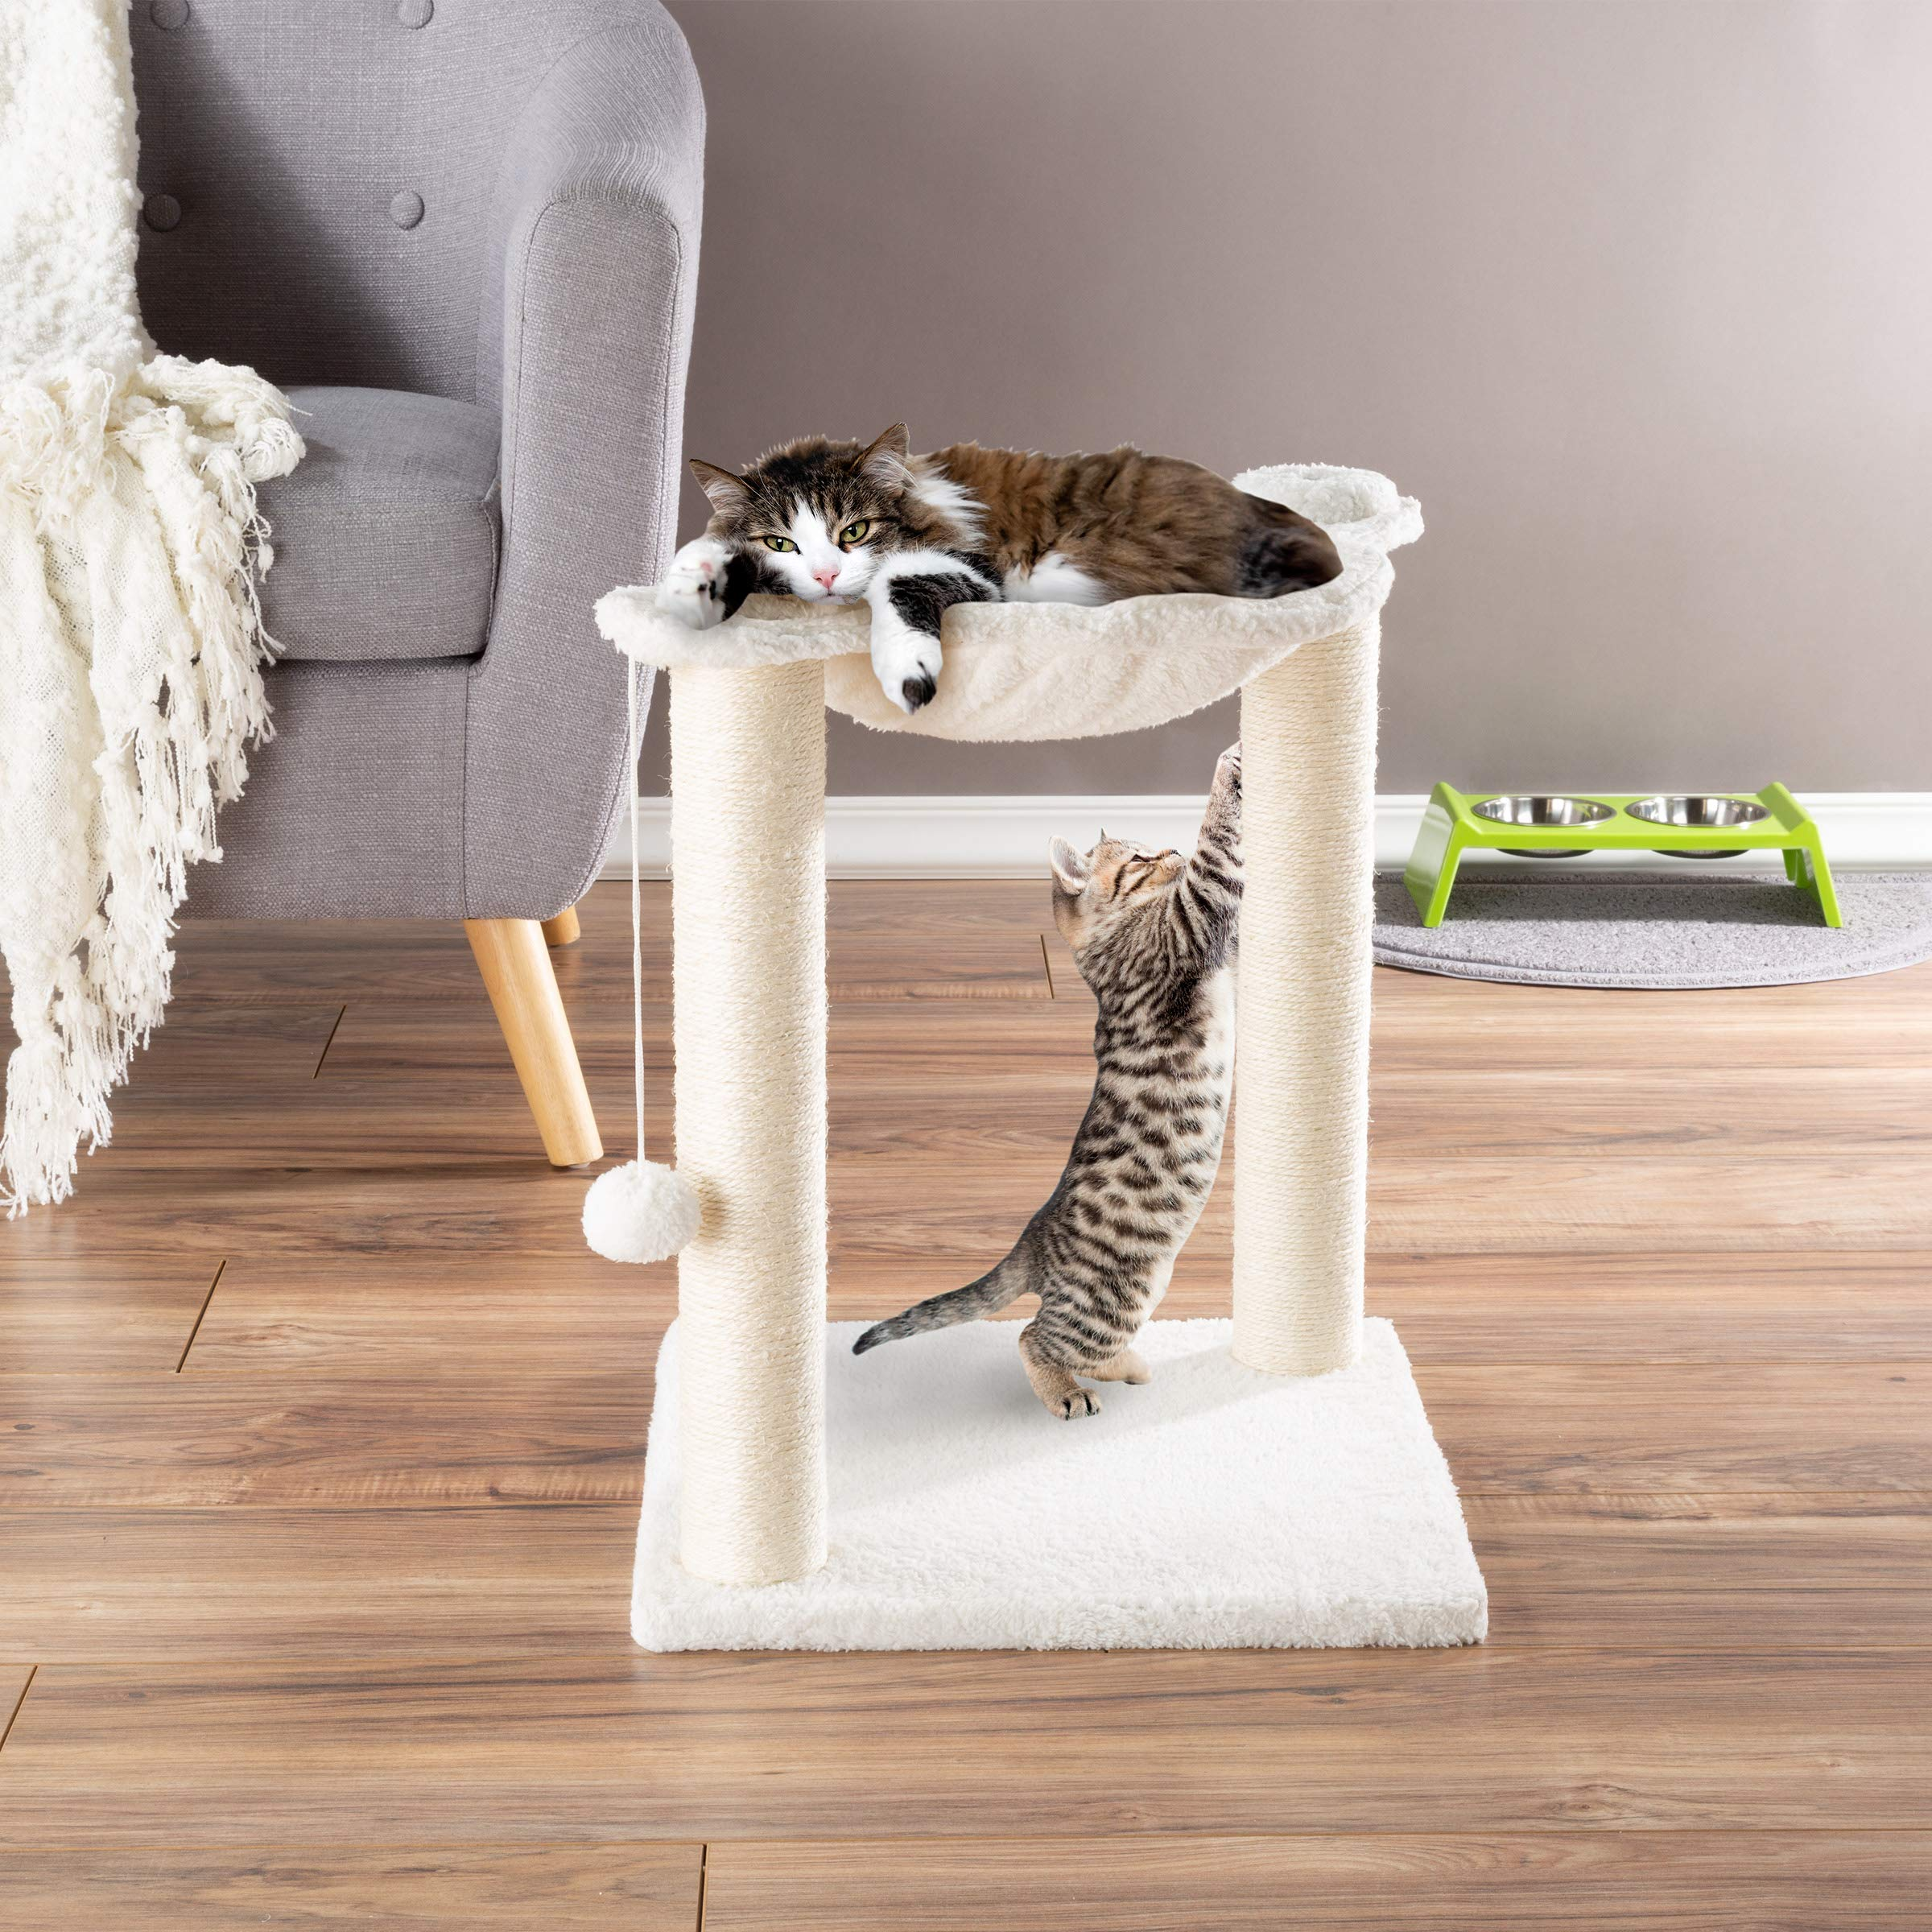 PETMAKER Cat Tree and Scratcher- Two Sisal Scratching Posts, Hammock Style Lounging Bed and Interactive Hanging Toy for Cats and Kittens (15.75'') by PETMAKER